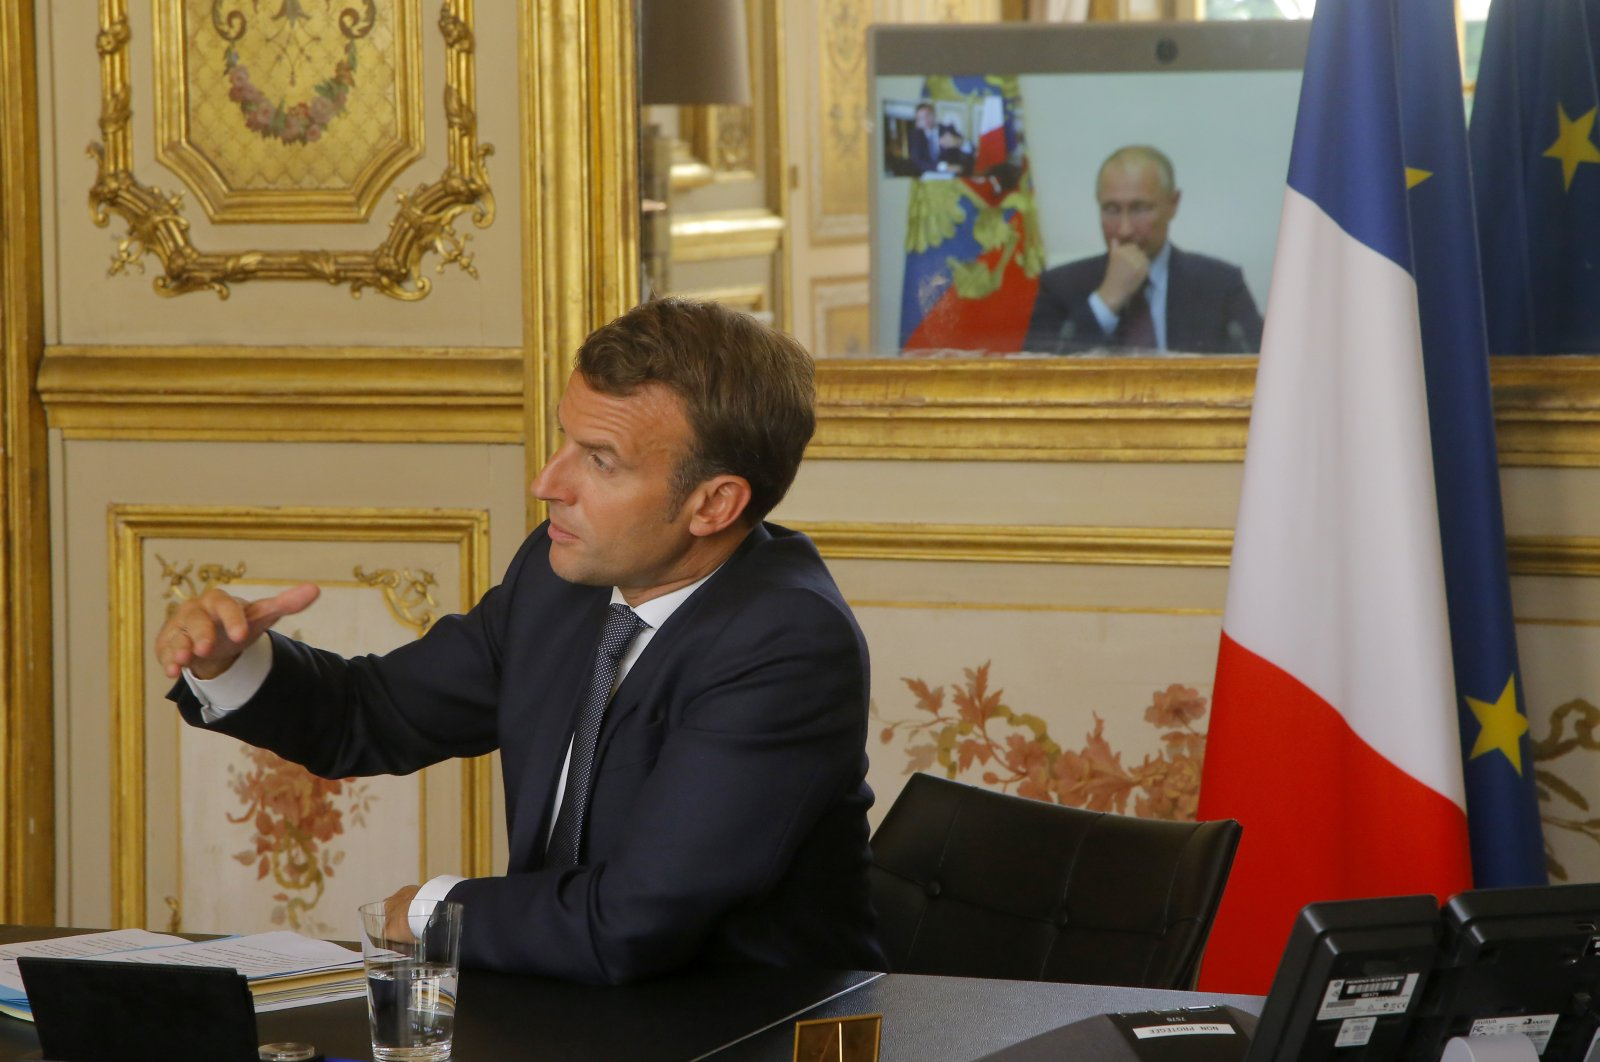 French President Emmanuel Macron talks to Russian President Vladimir Putin during a video conference at the Elysee Palace in Paris, June 26, 2020. (AP)